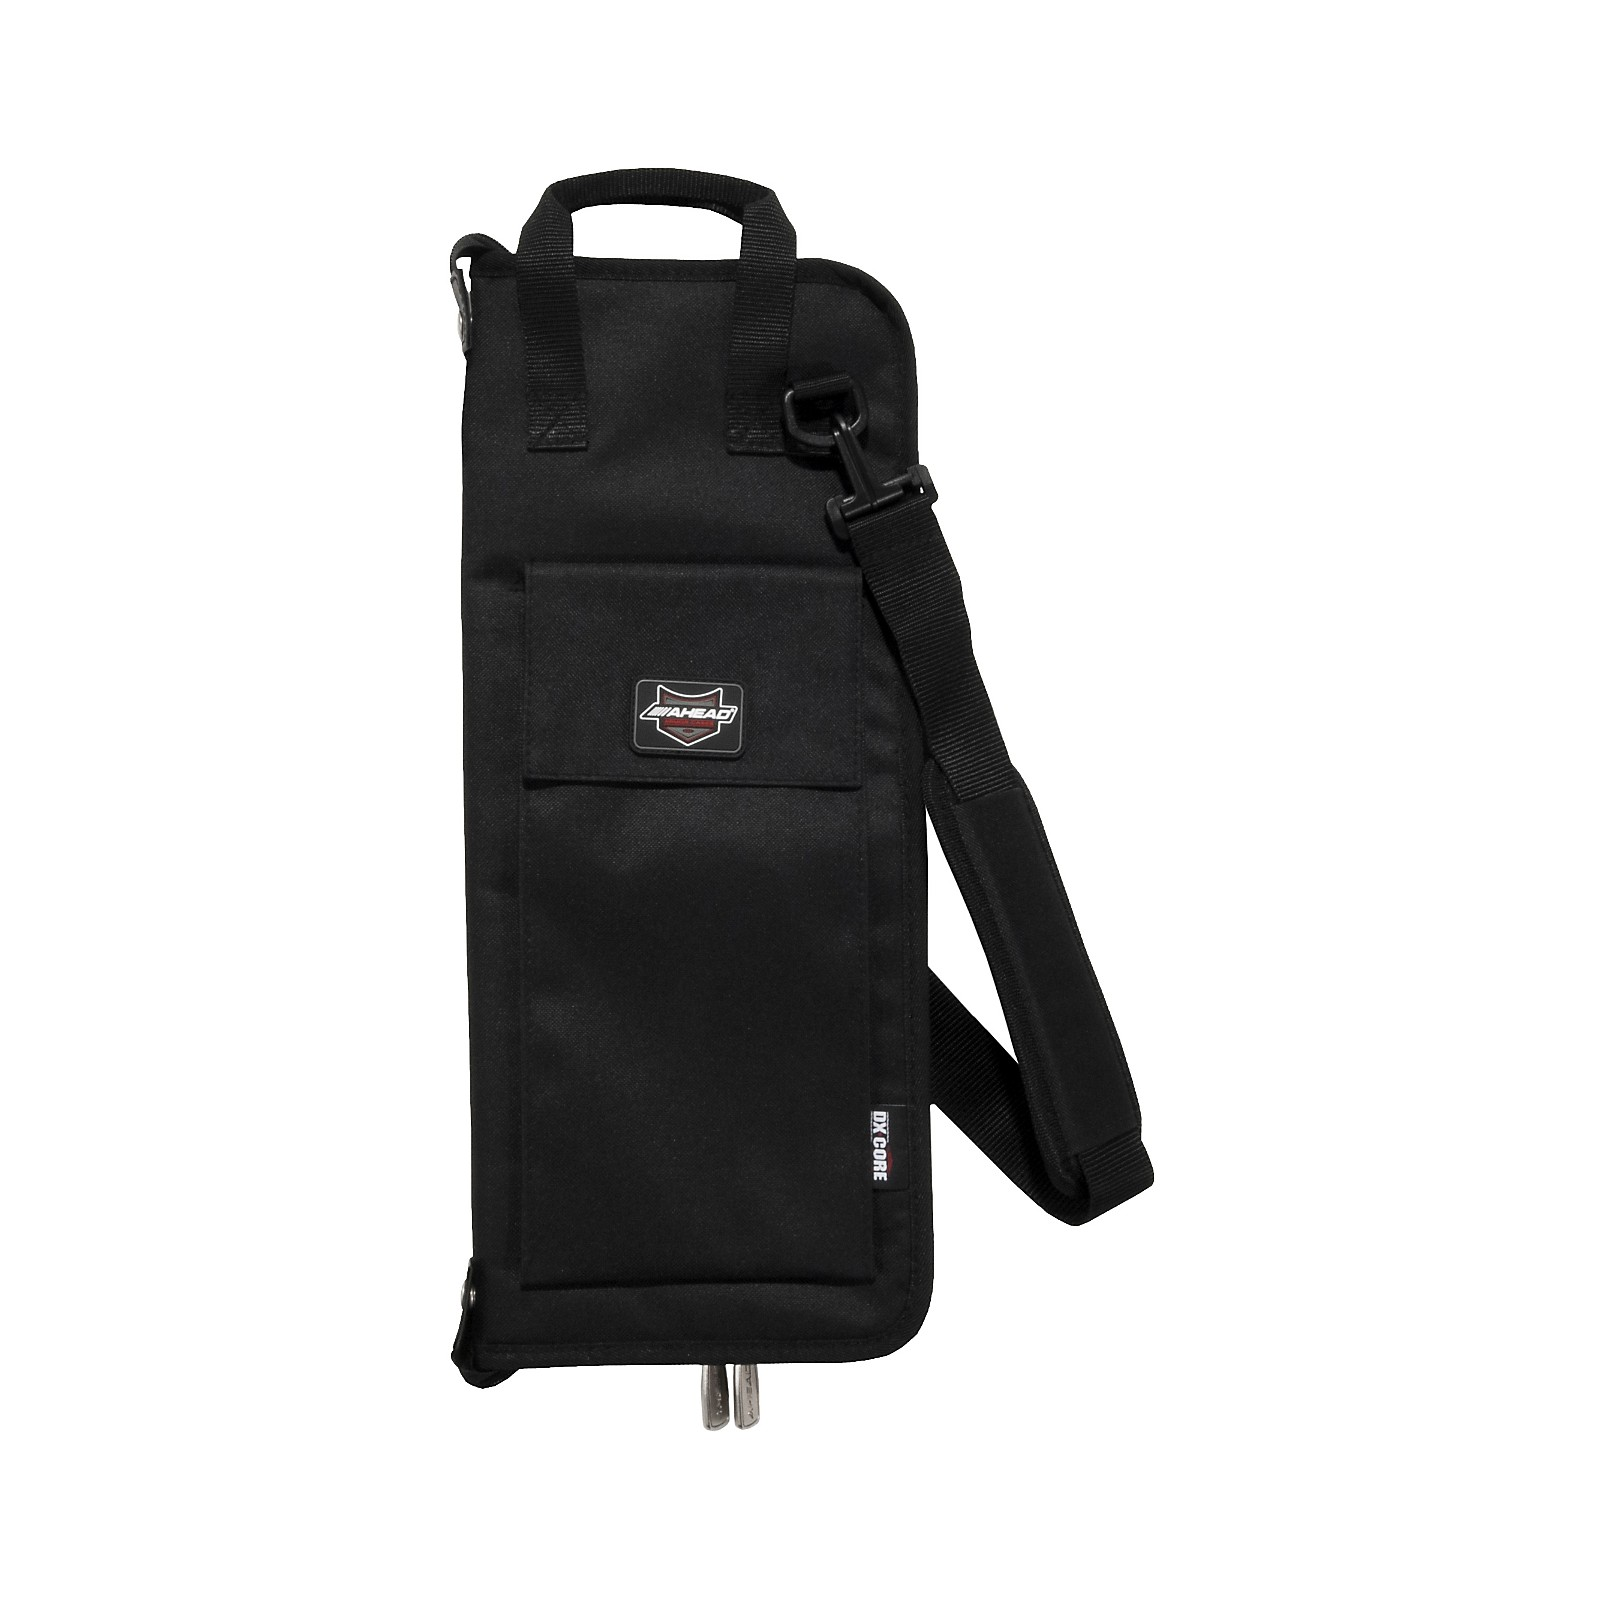 Ahead Armor Cases Deluxe Standard Stick Case with Shoulder Strap